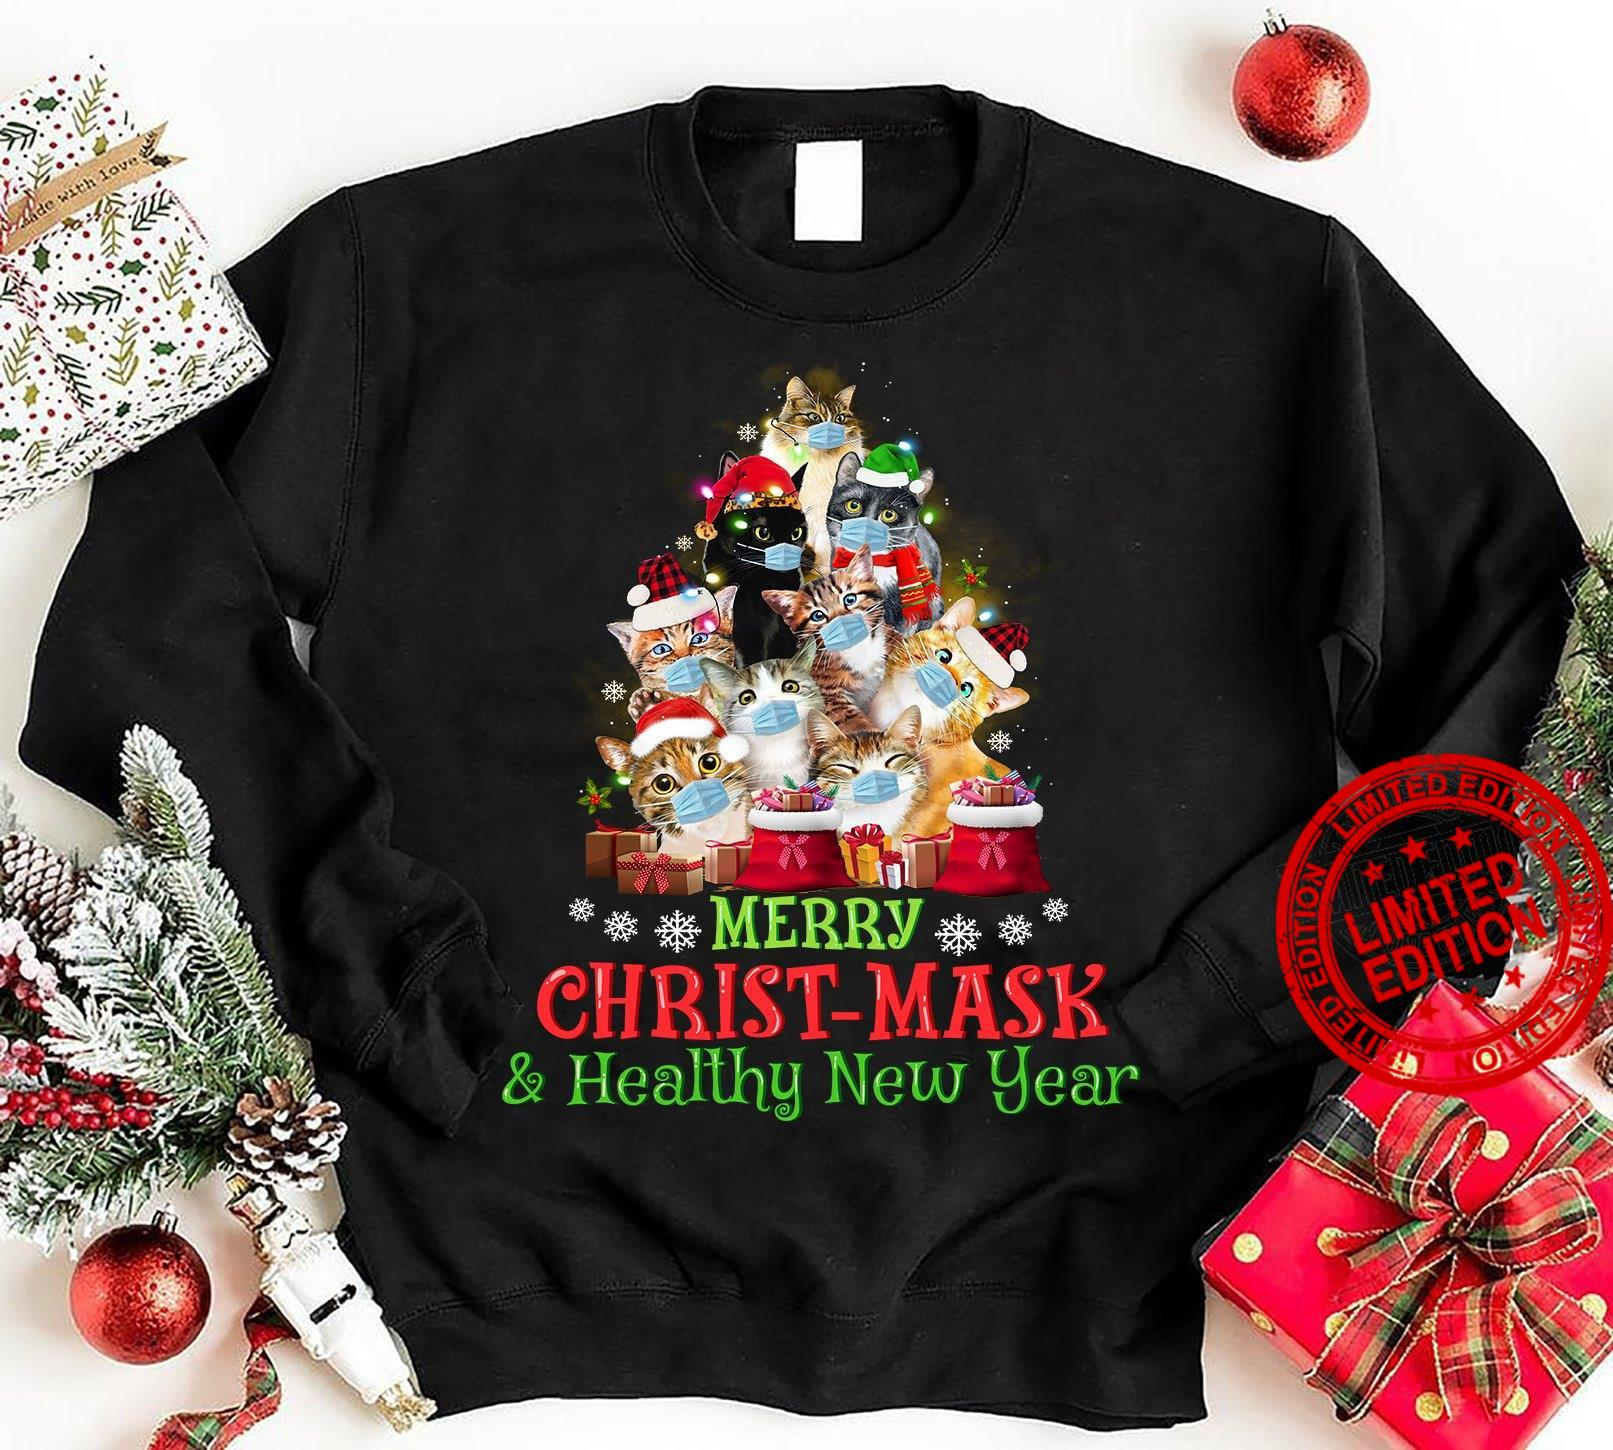 Merry Christmask Healthy New Year Shirt